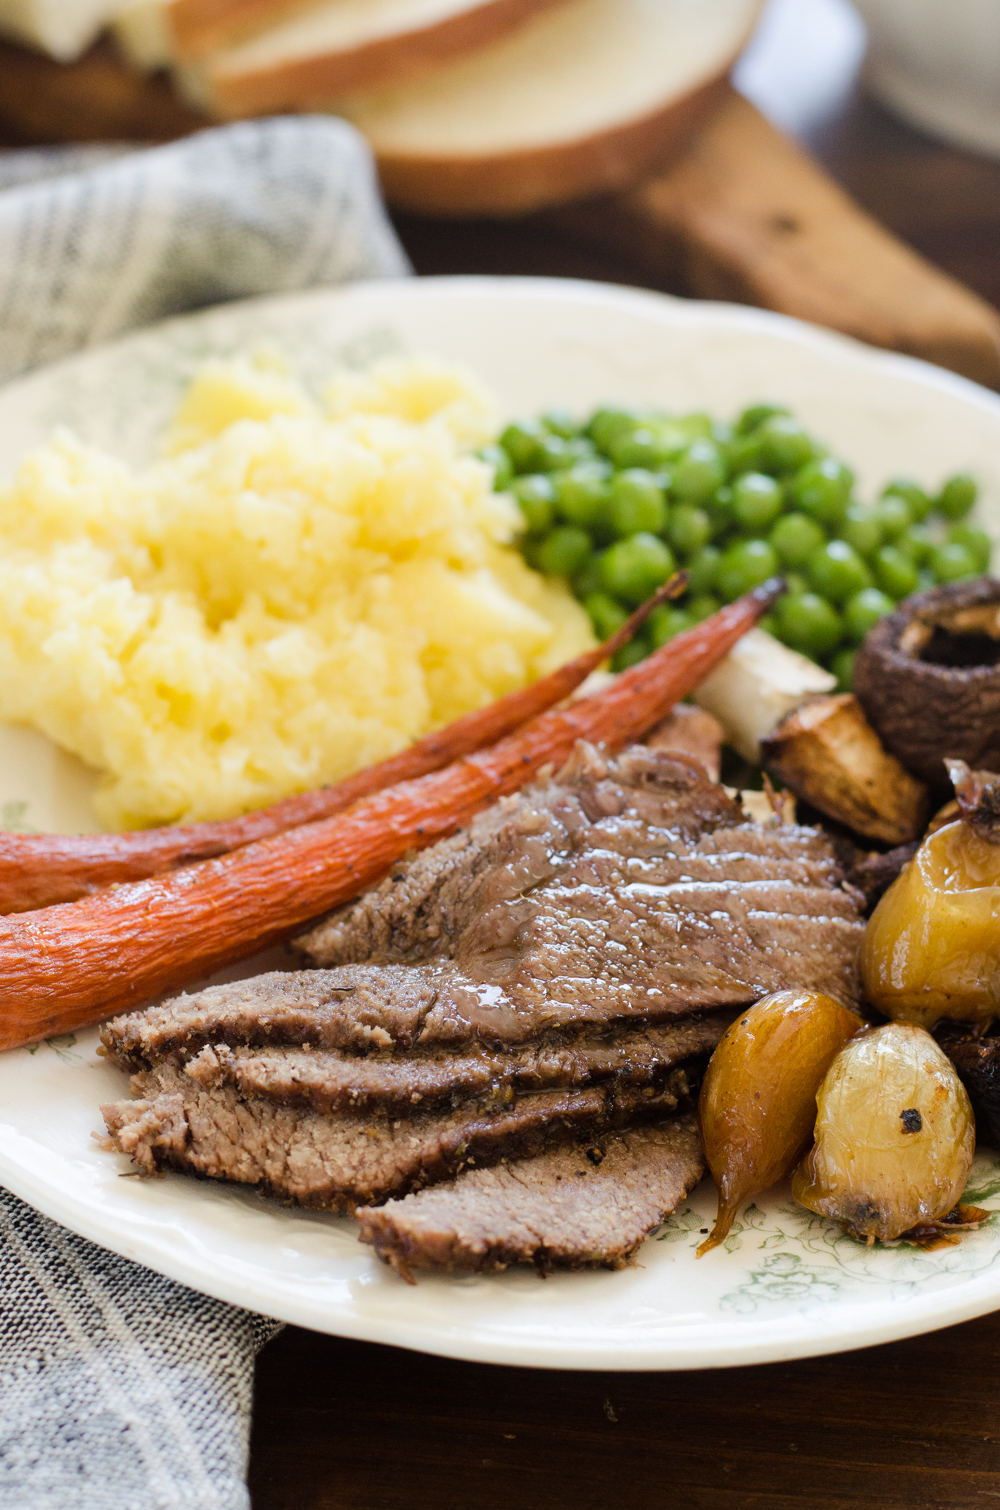 How to Cook a Roast Beef Dinner